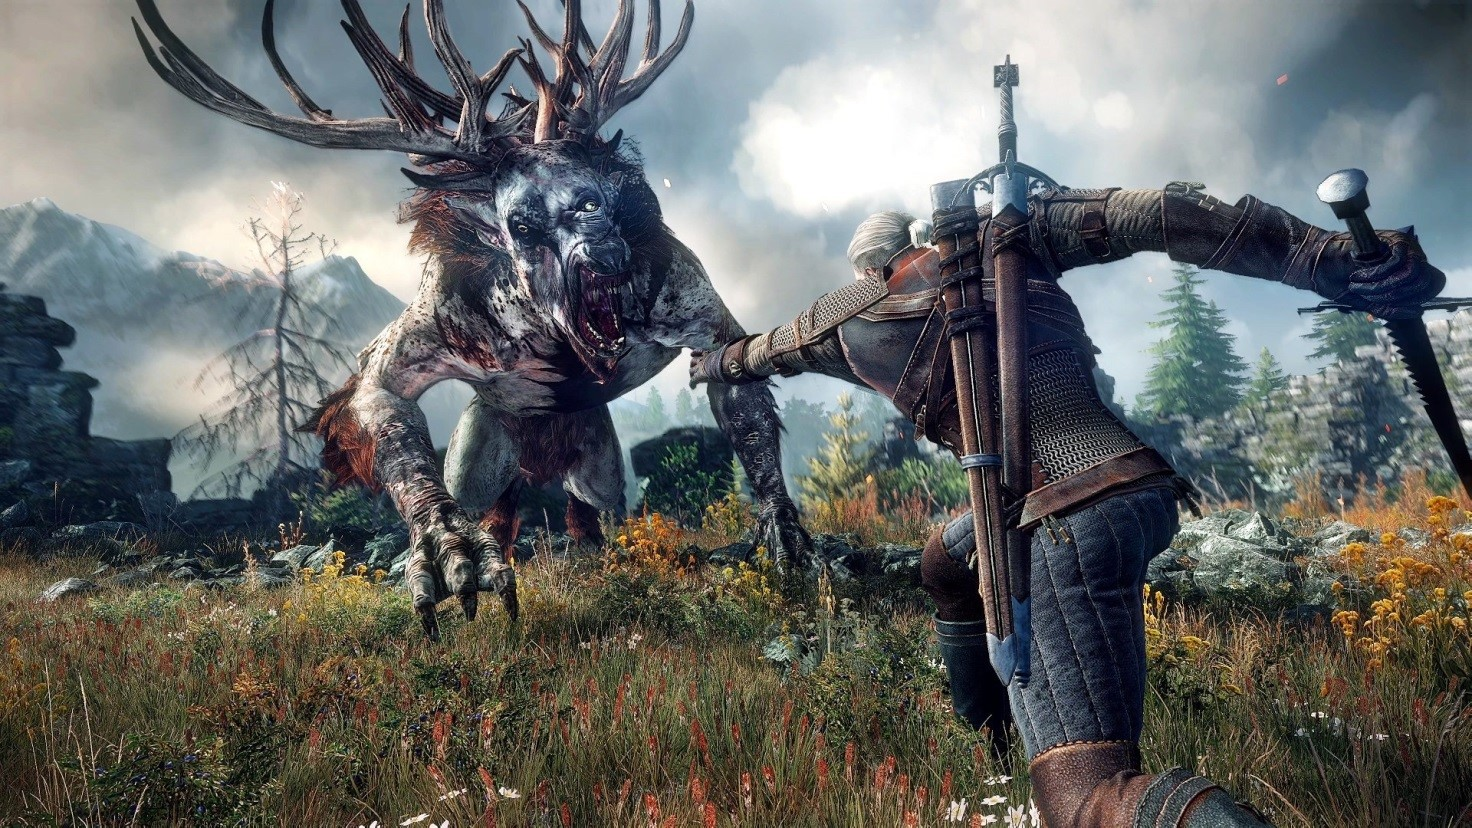 №9. The Witcher 3: Wild Hunt